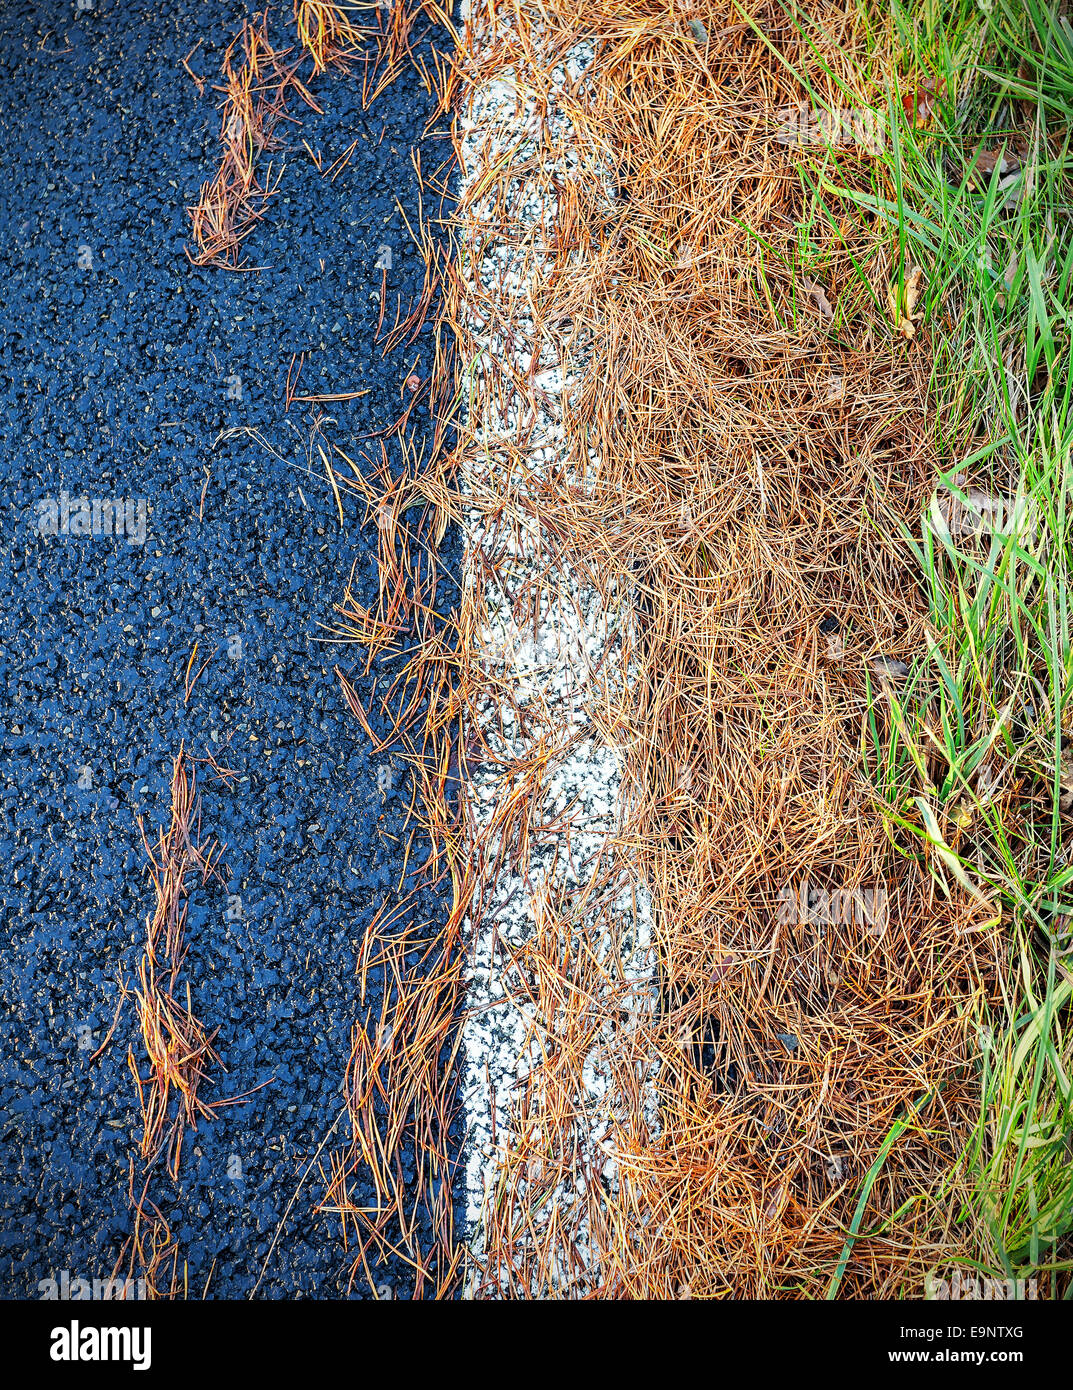 Conifer needles on asphalt road, abstract background. - Stock Image